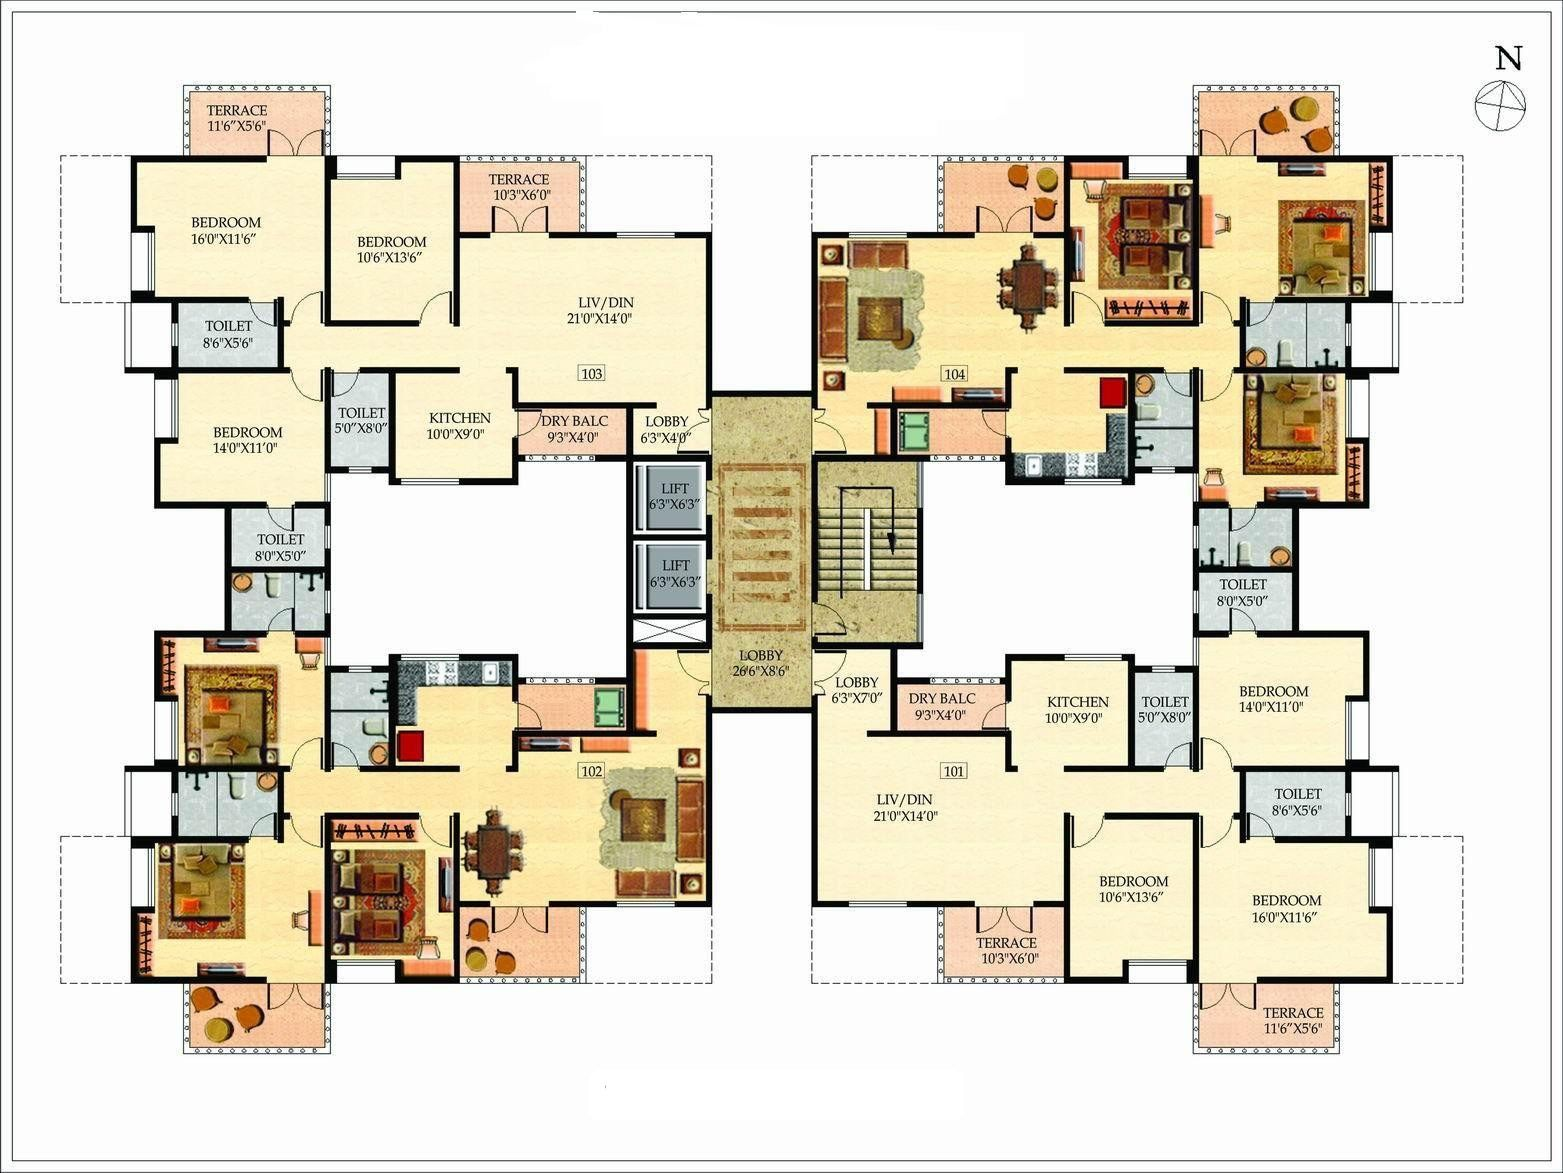 6 bedroom mansion floor plans design ideas 2017 2018 for Modern 5 bedroom house floor plans